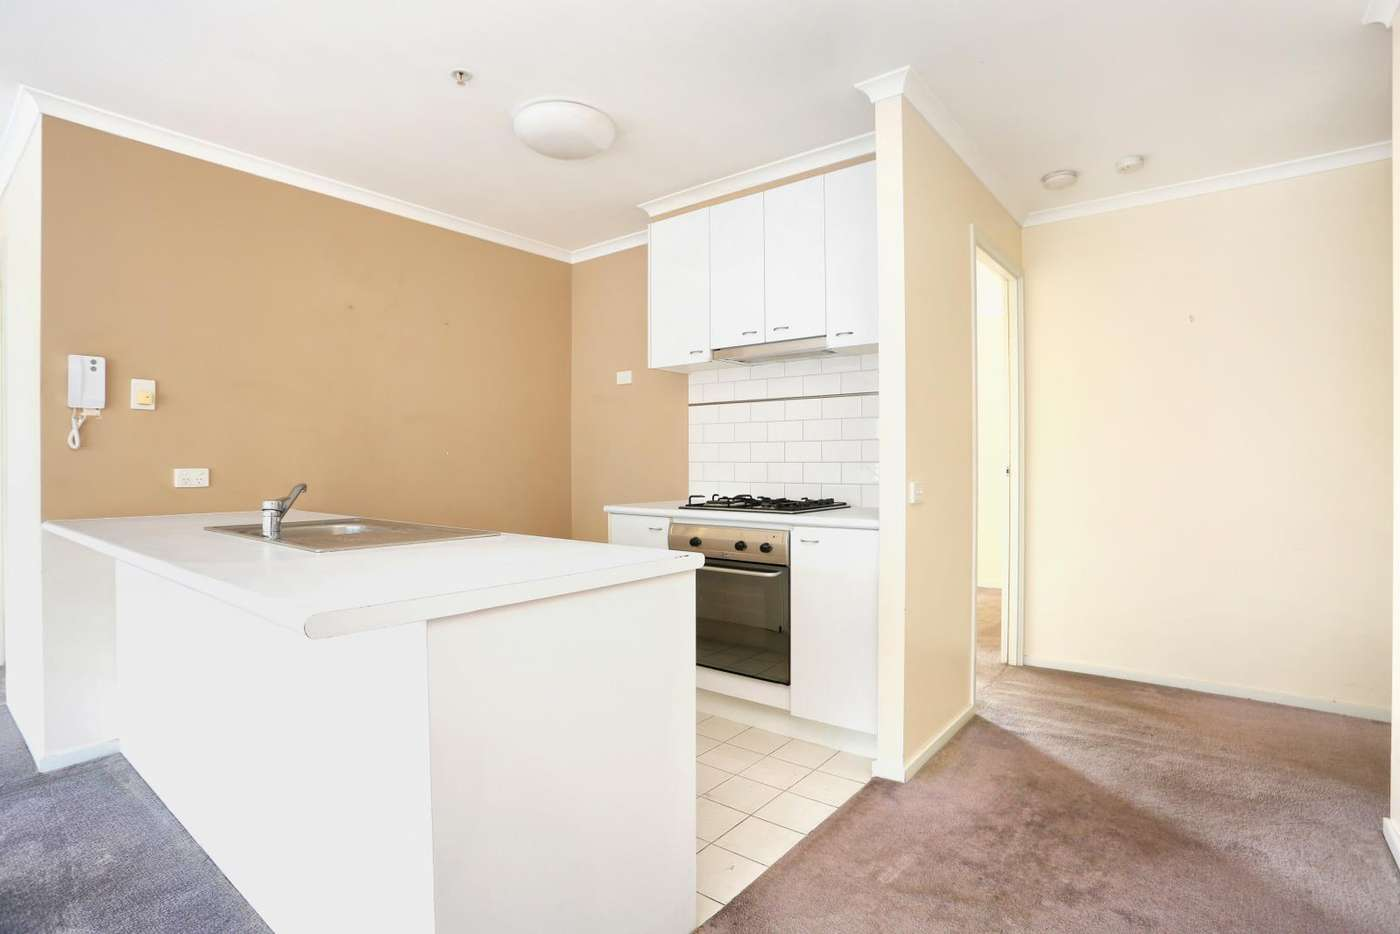 Main view of Homely apartment listing, 167/416 St Kilda Road, Melbourne VIC 3004